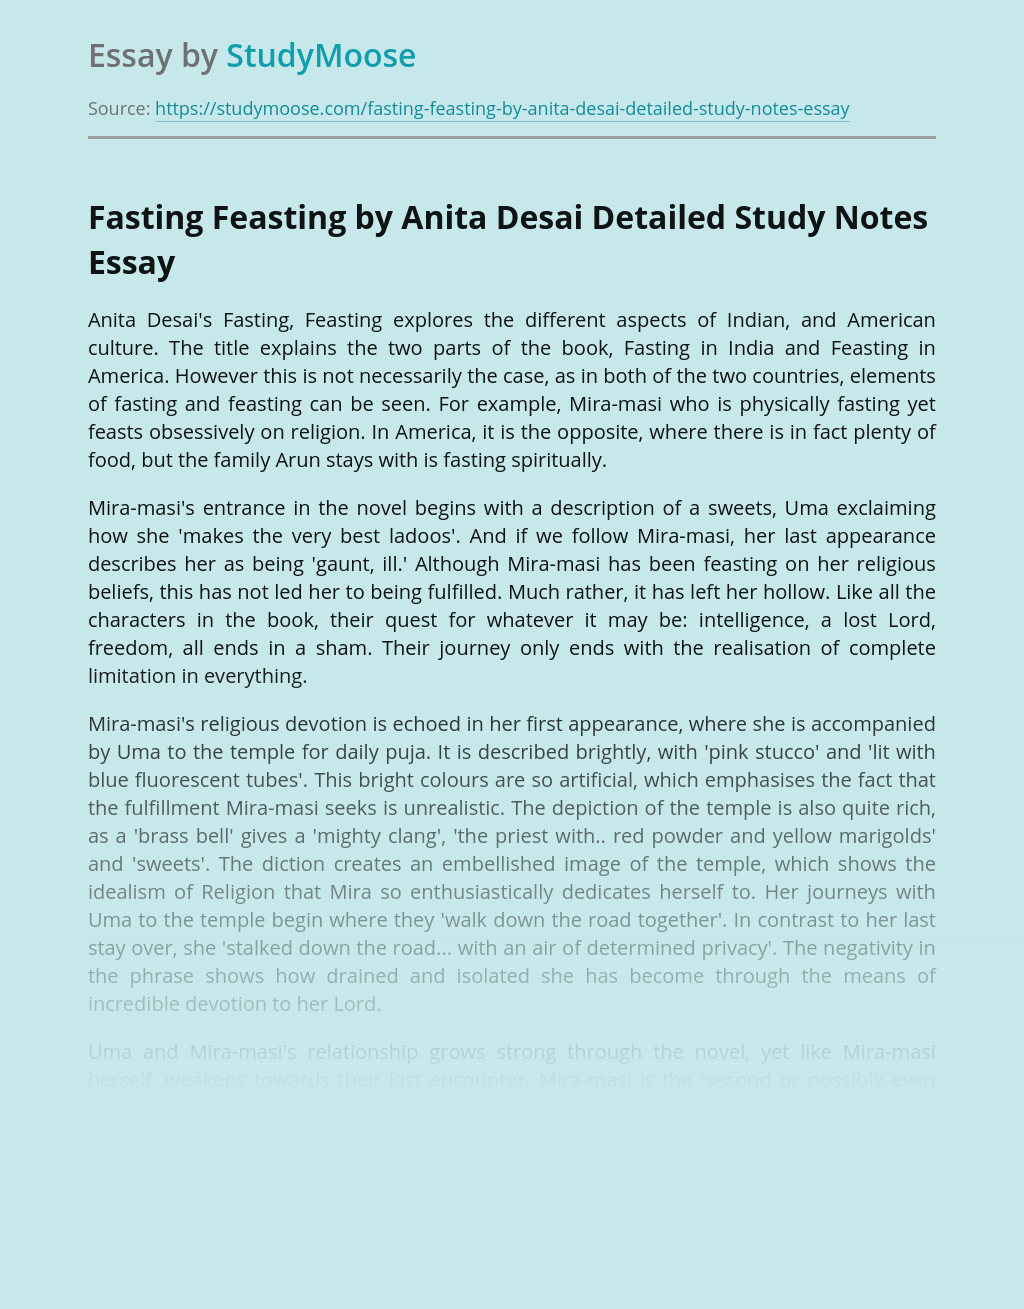 Fasting Feasting by Anita Desai Detailed Study Notes